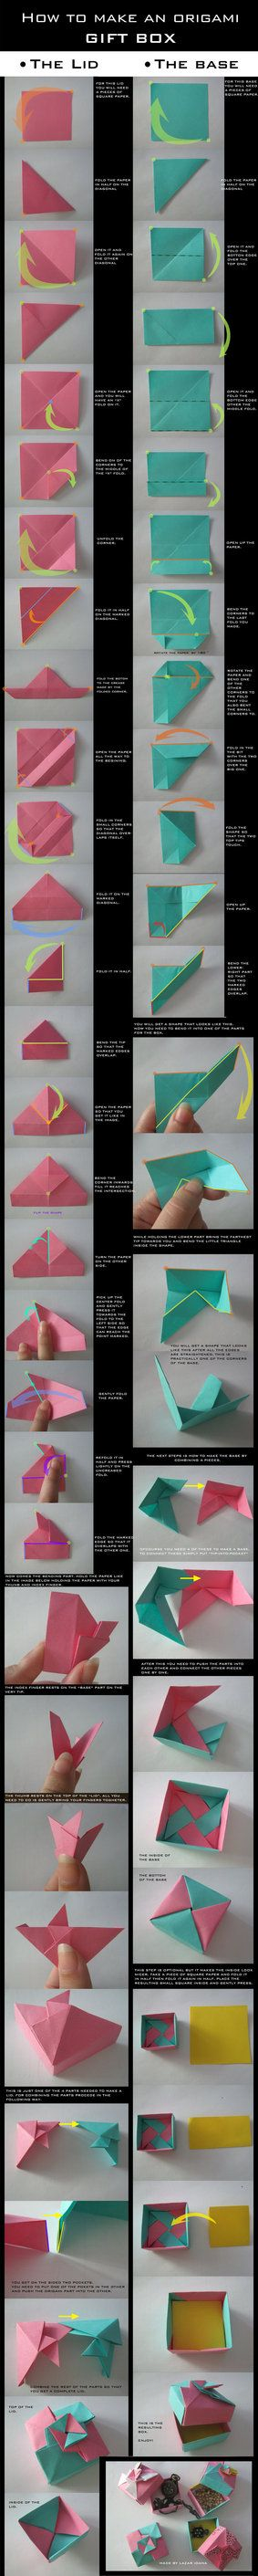 TUTORIAL: Origami Gift Box by DarkUmah